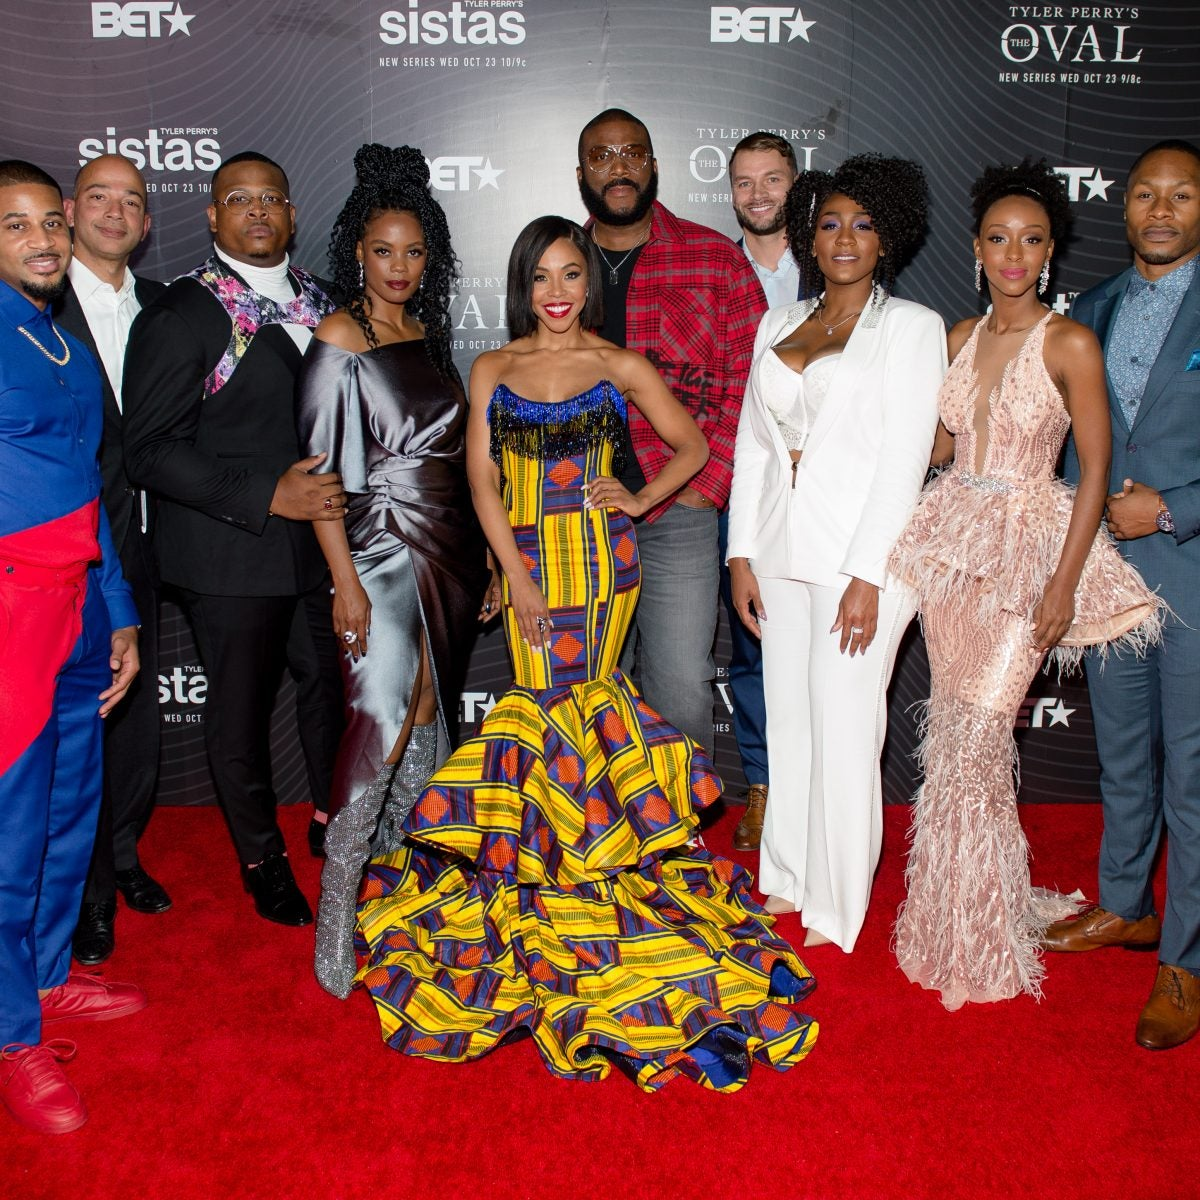 Two Stars Of BET's 'Sistas' Just Made Their Relationship Instagram Official